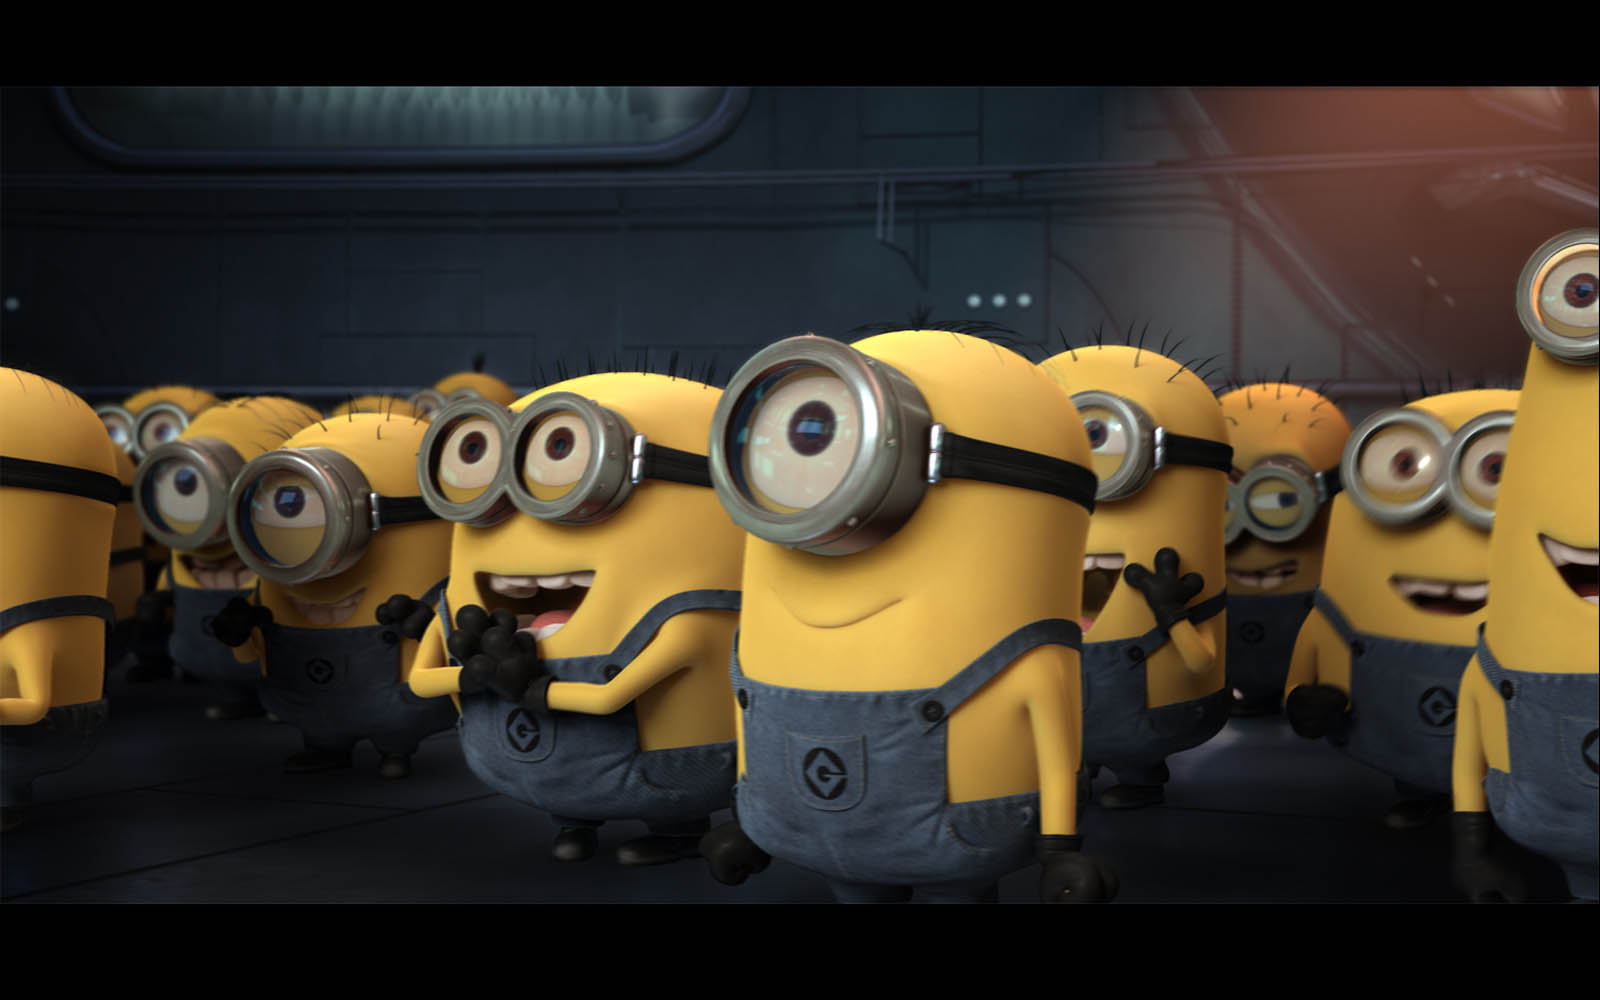 Despicable me wallpapers images photos pictures and backgrounds